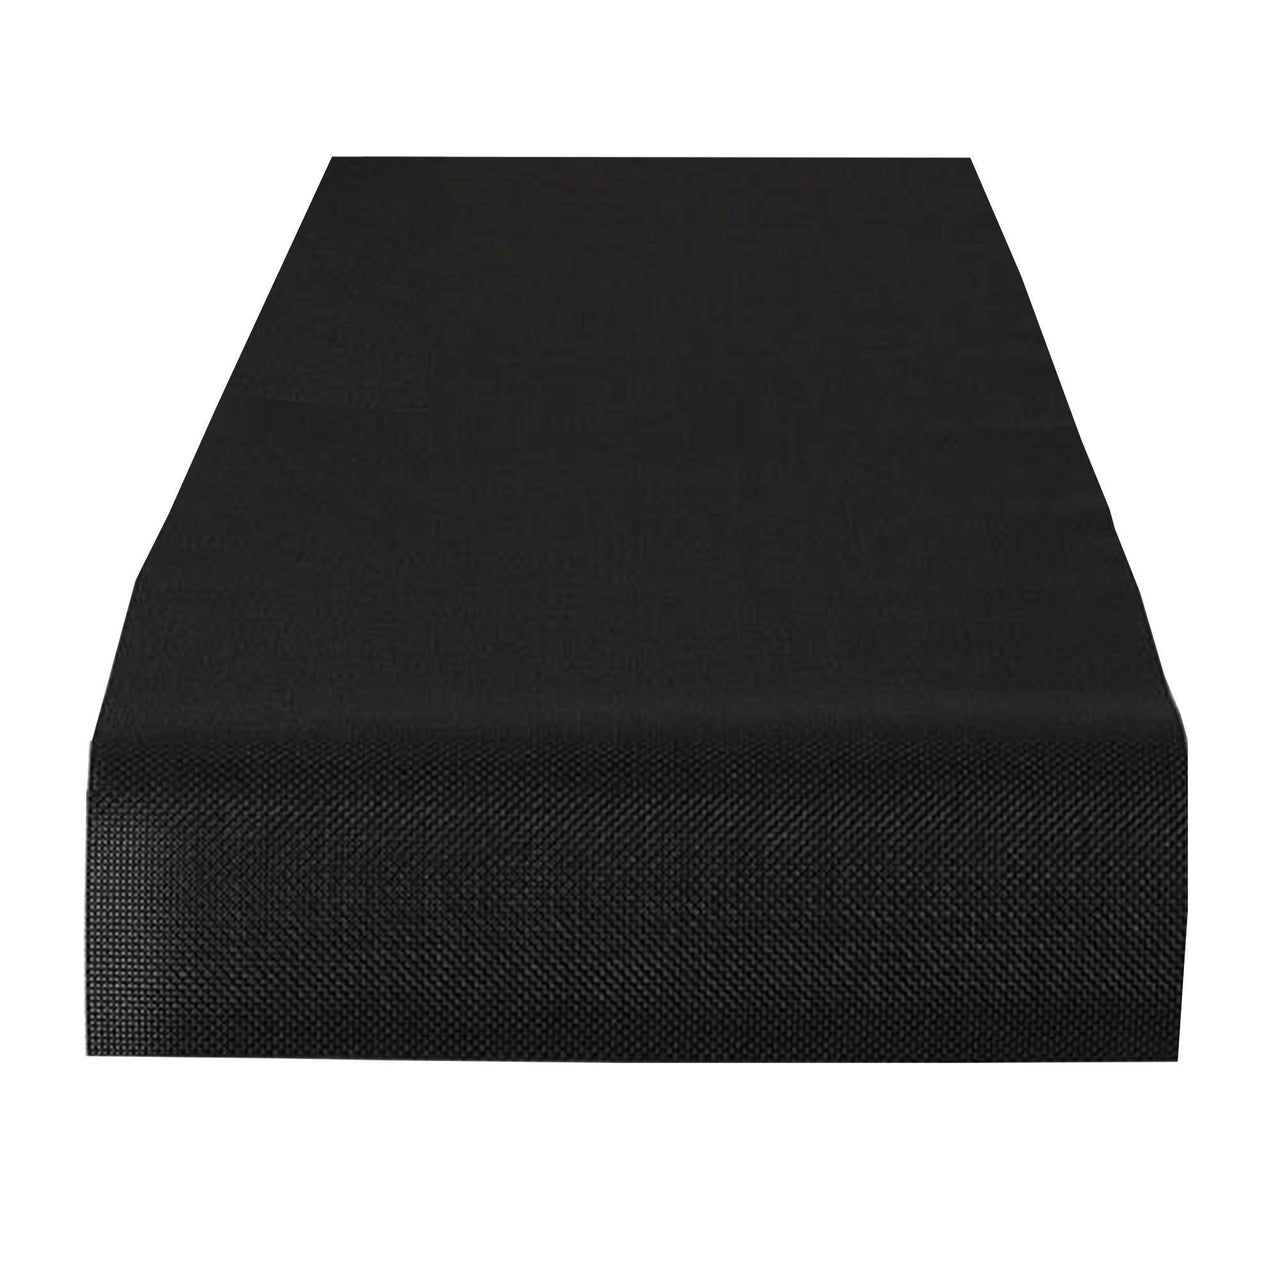 Mini Basketweave Table Runner: Black